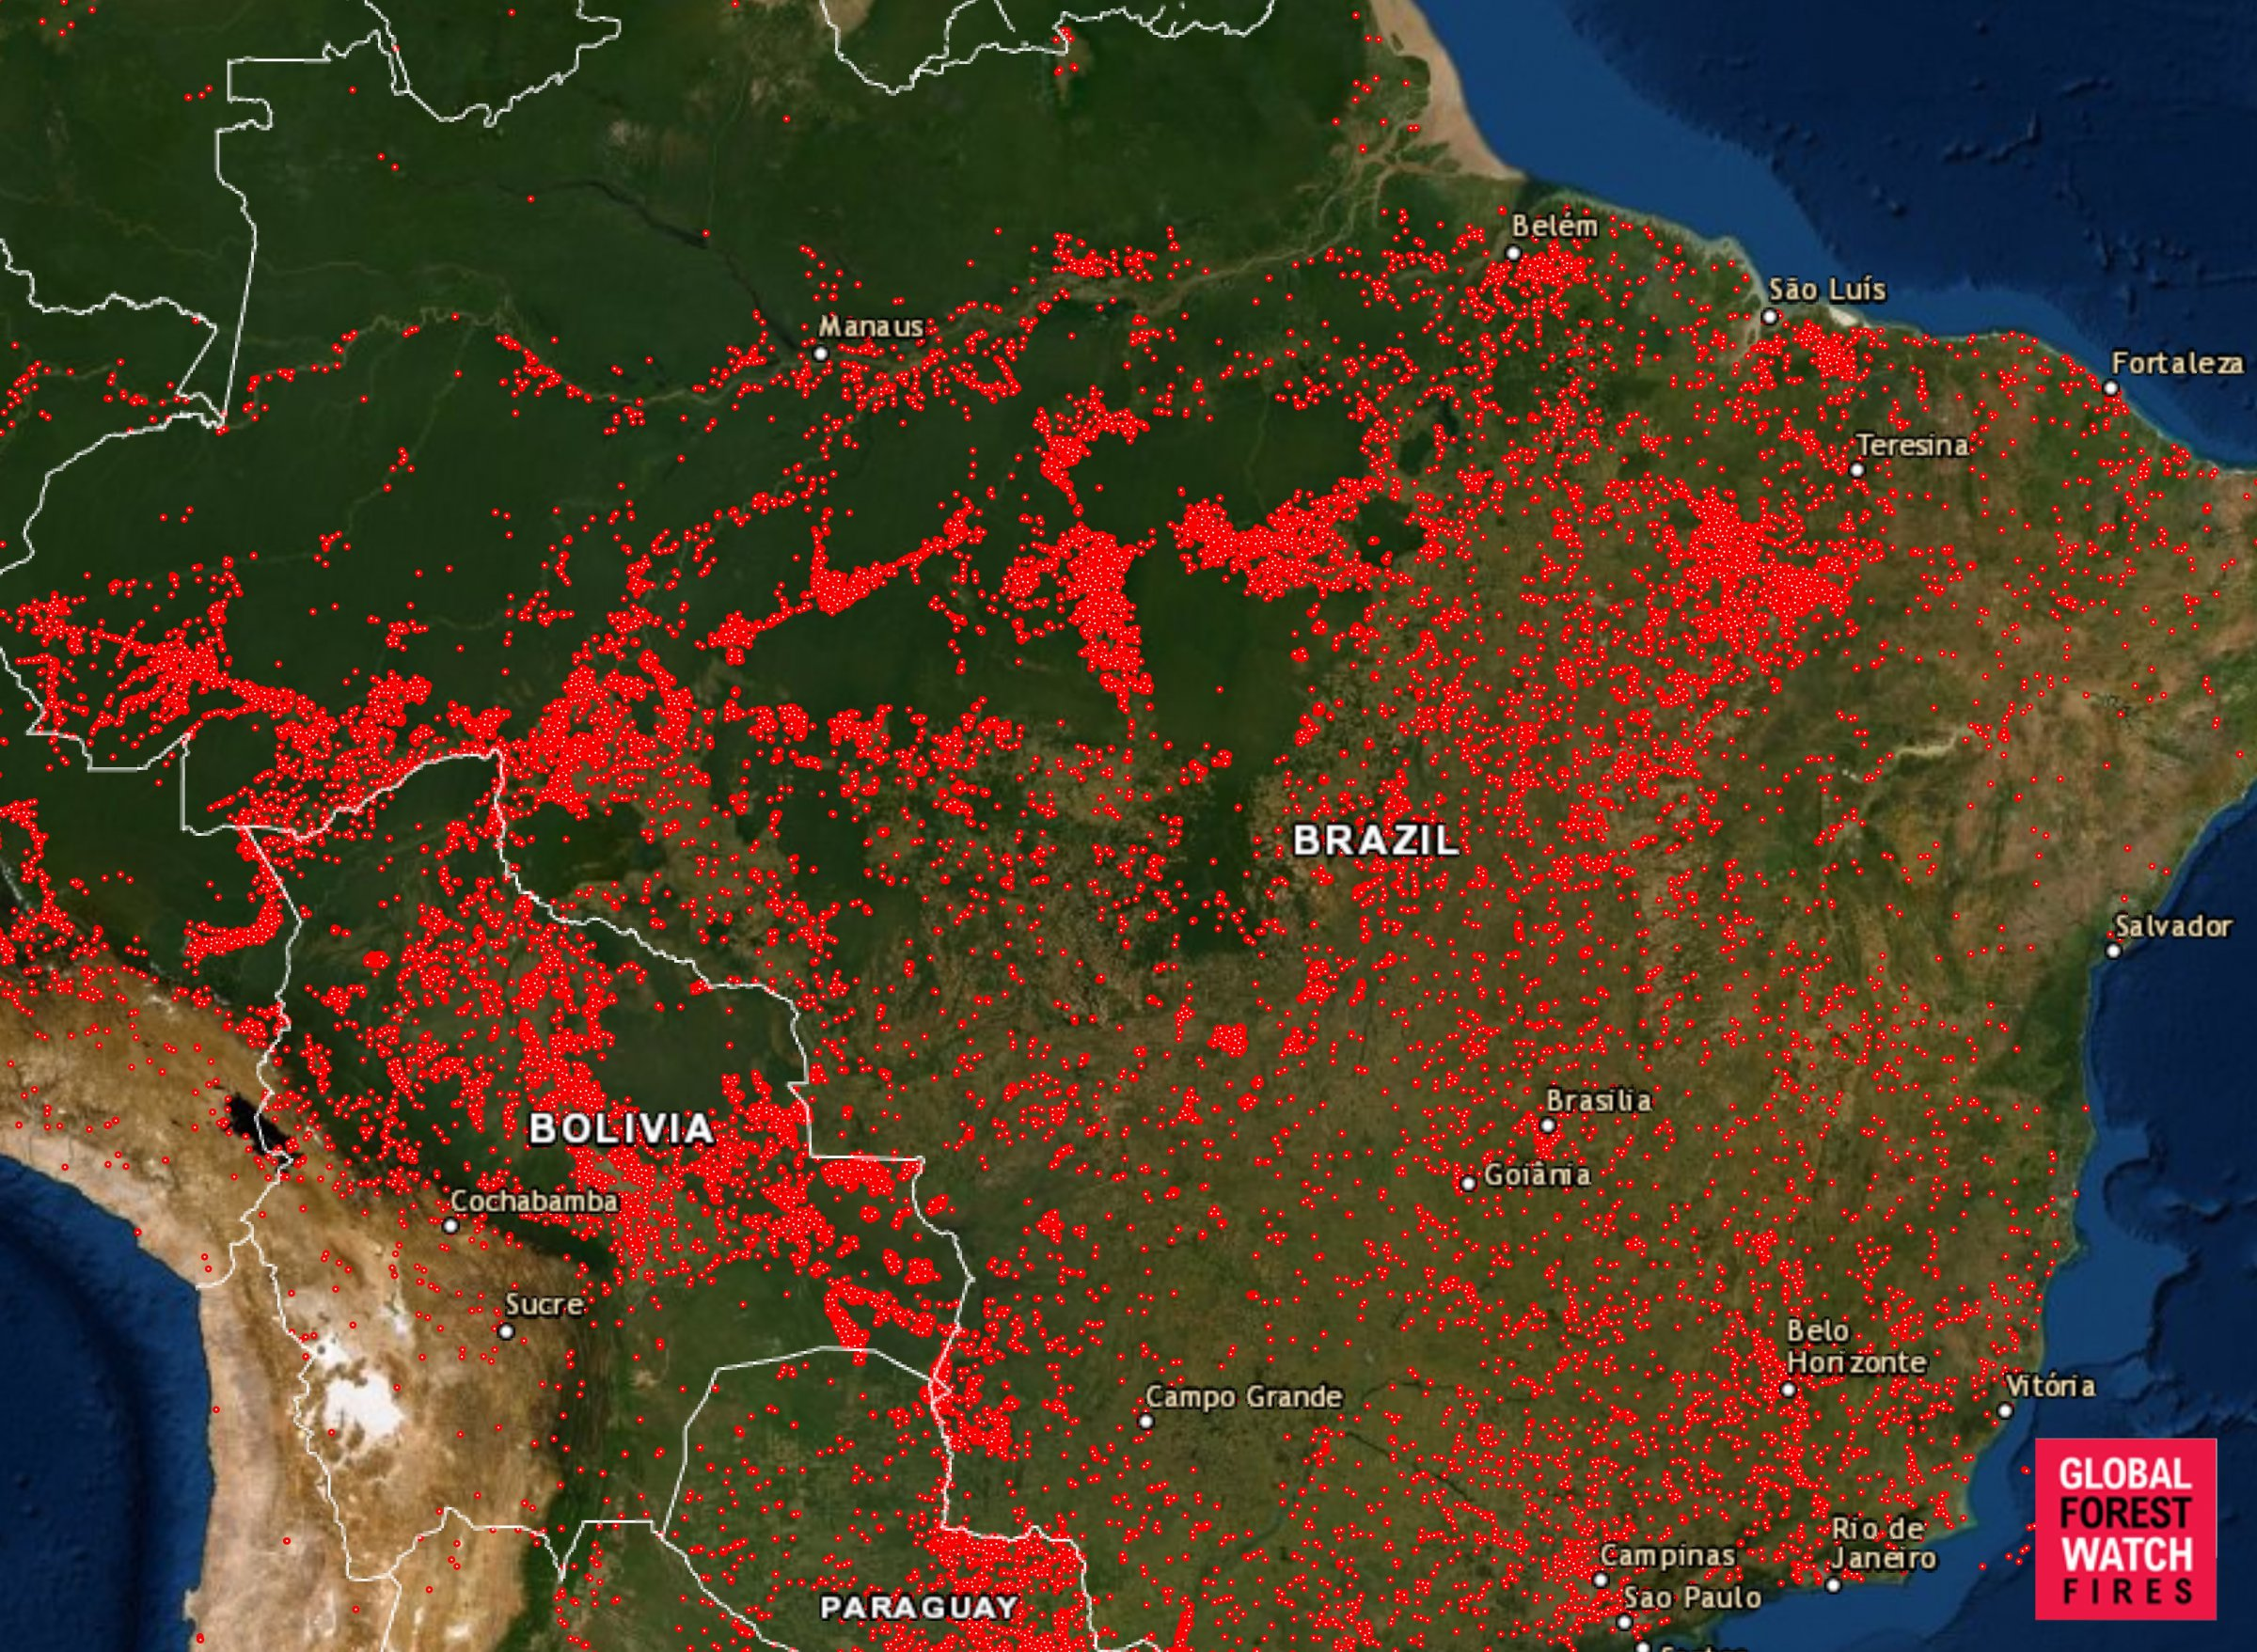 The Amazon Fires Are So Big They Can Be Seen from Space